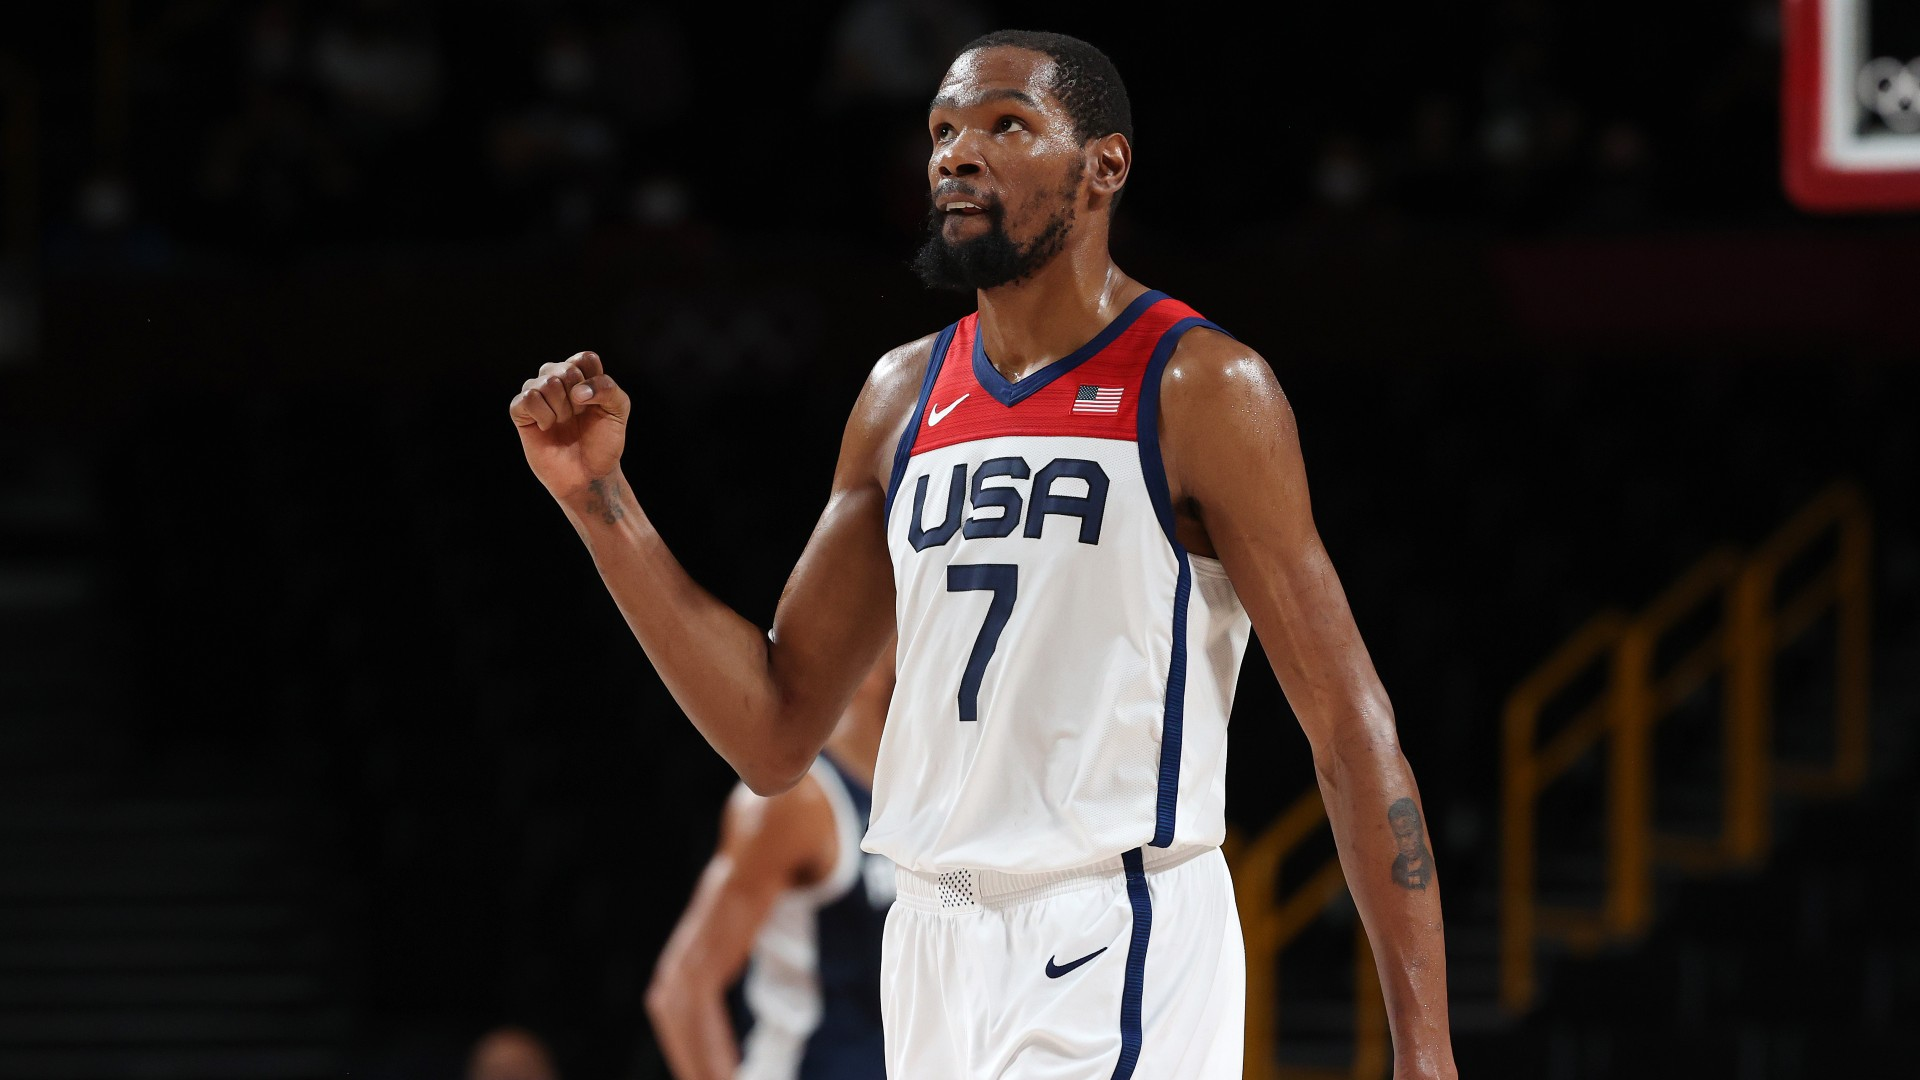 USA vs. France score, results: Kevin Durant leads Team USA to fourth consecutive gold medal